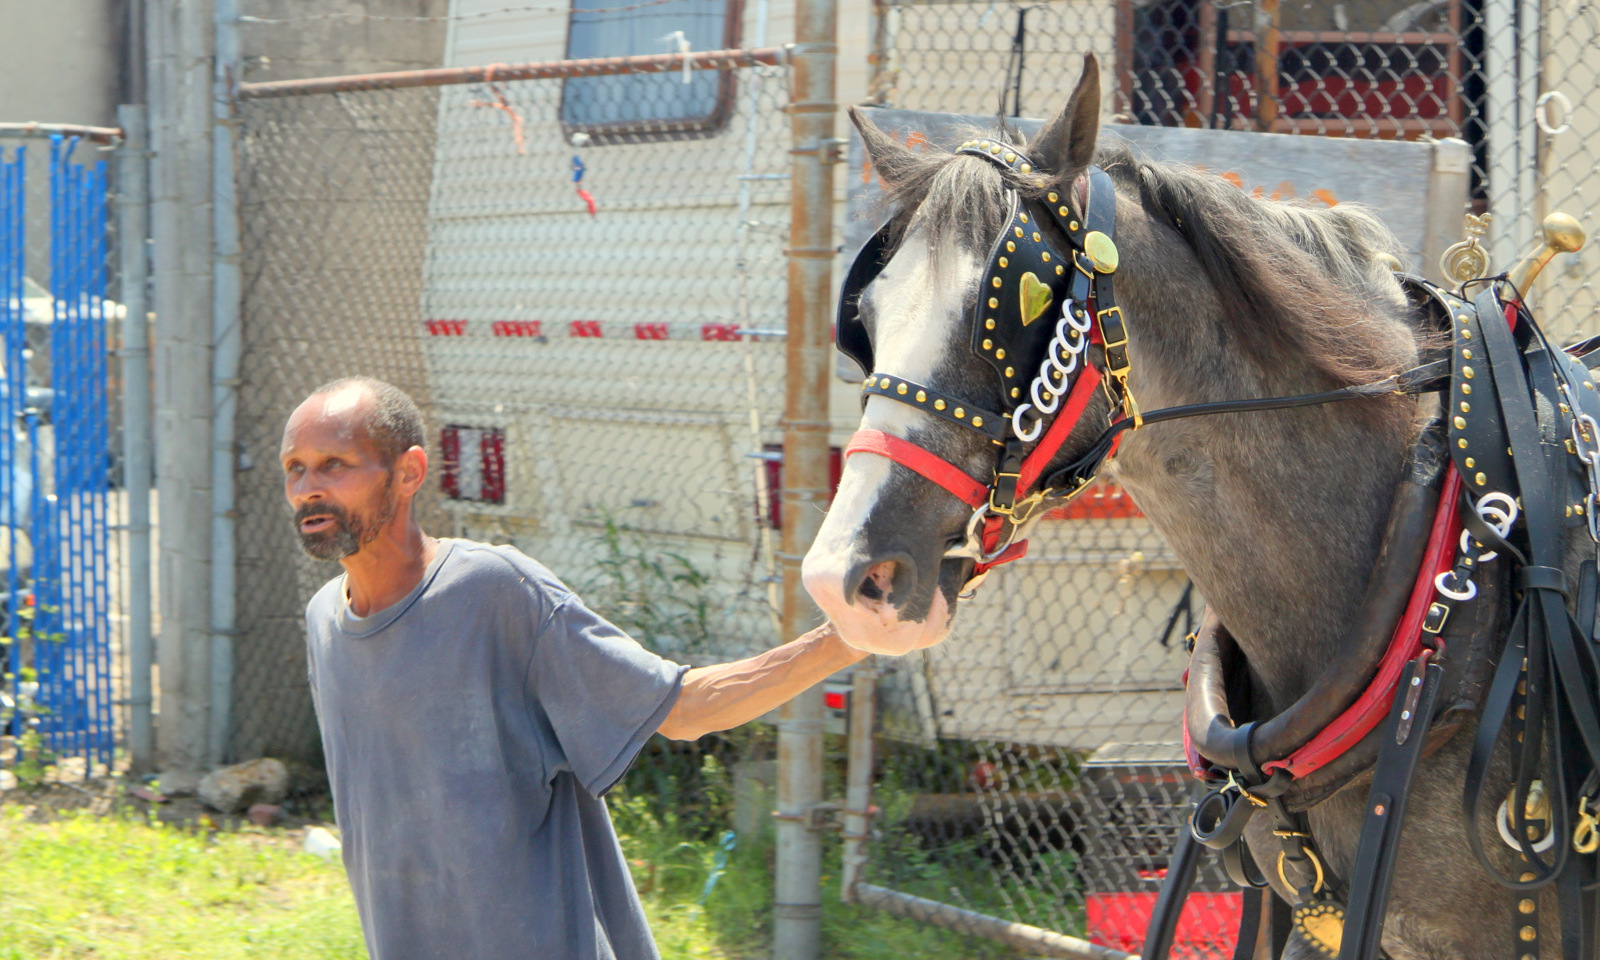 Dennis Randall lives at the stable and cares for the horses there. (Photo by Theodore Epstein)